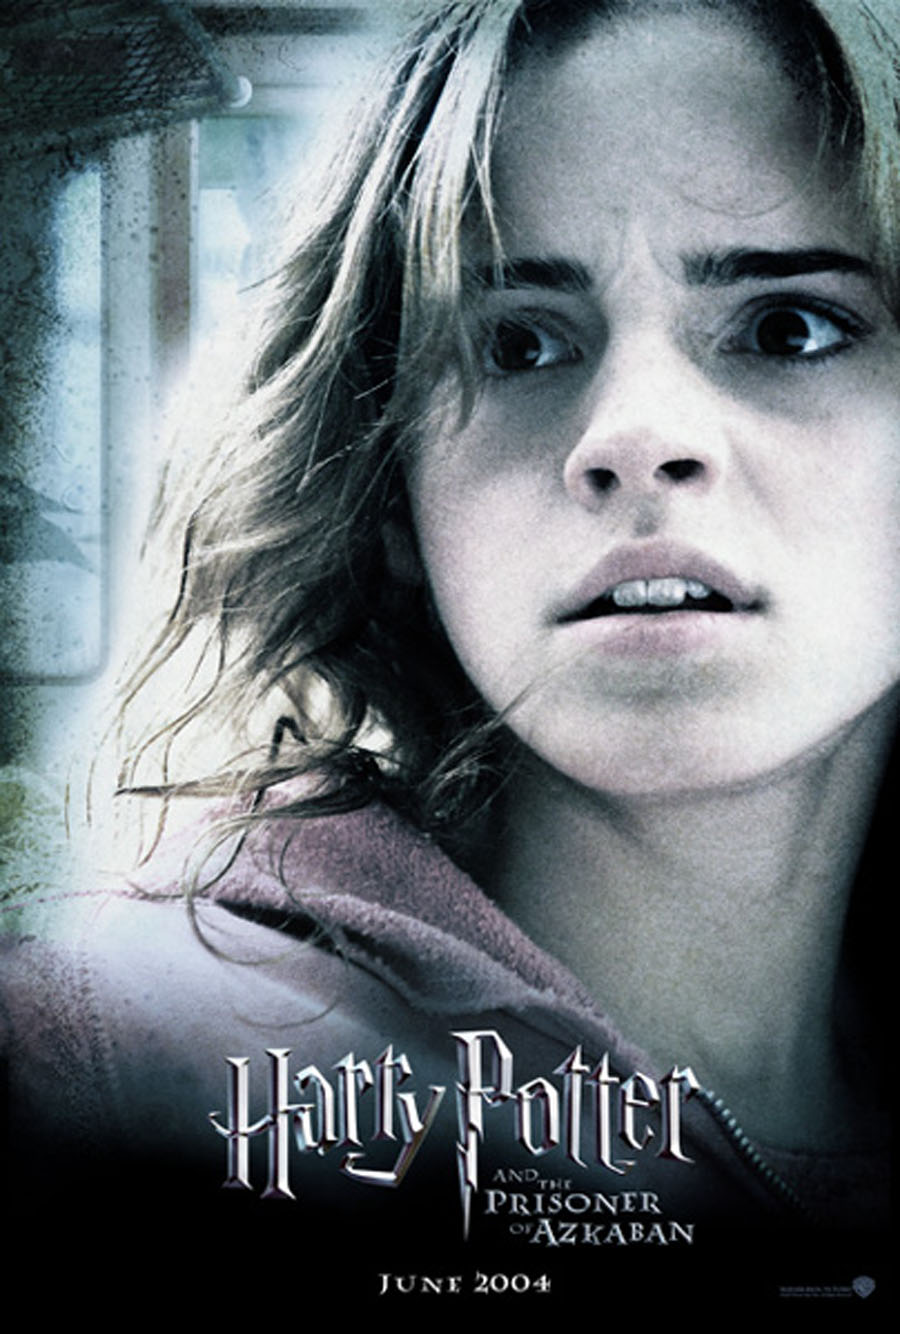 """<a href=""""http://www.totallyemmawatson.com/gallery/acting-career/harry-potter-and-the-prisoner-of-azkaban/posters"""">Posters</a>"""